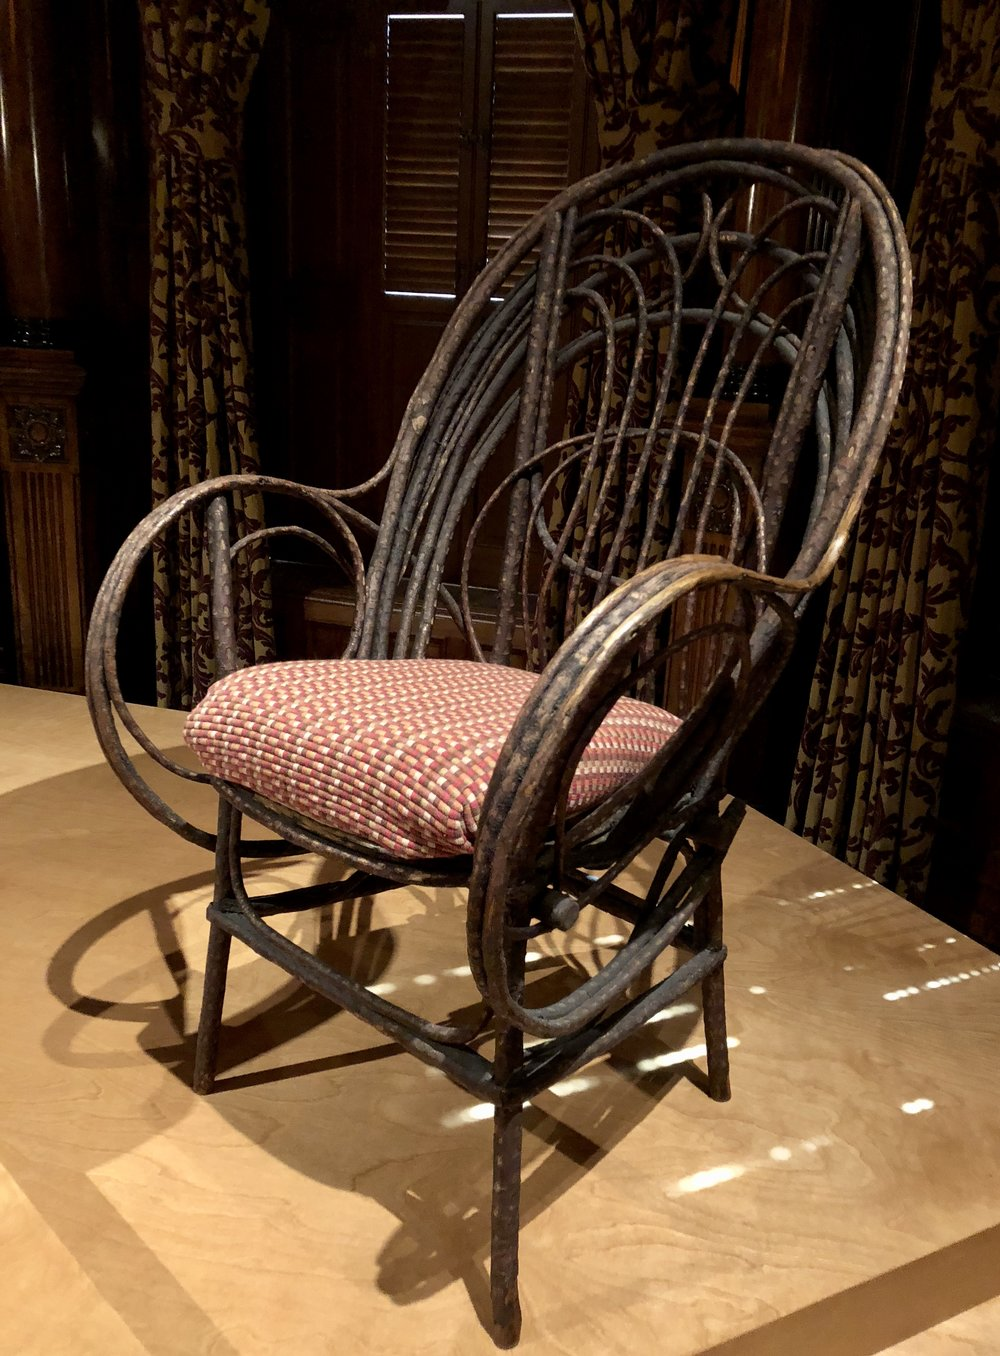 iunpatterned-driehaus-chair-7.jpg